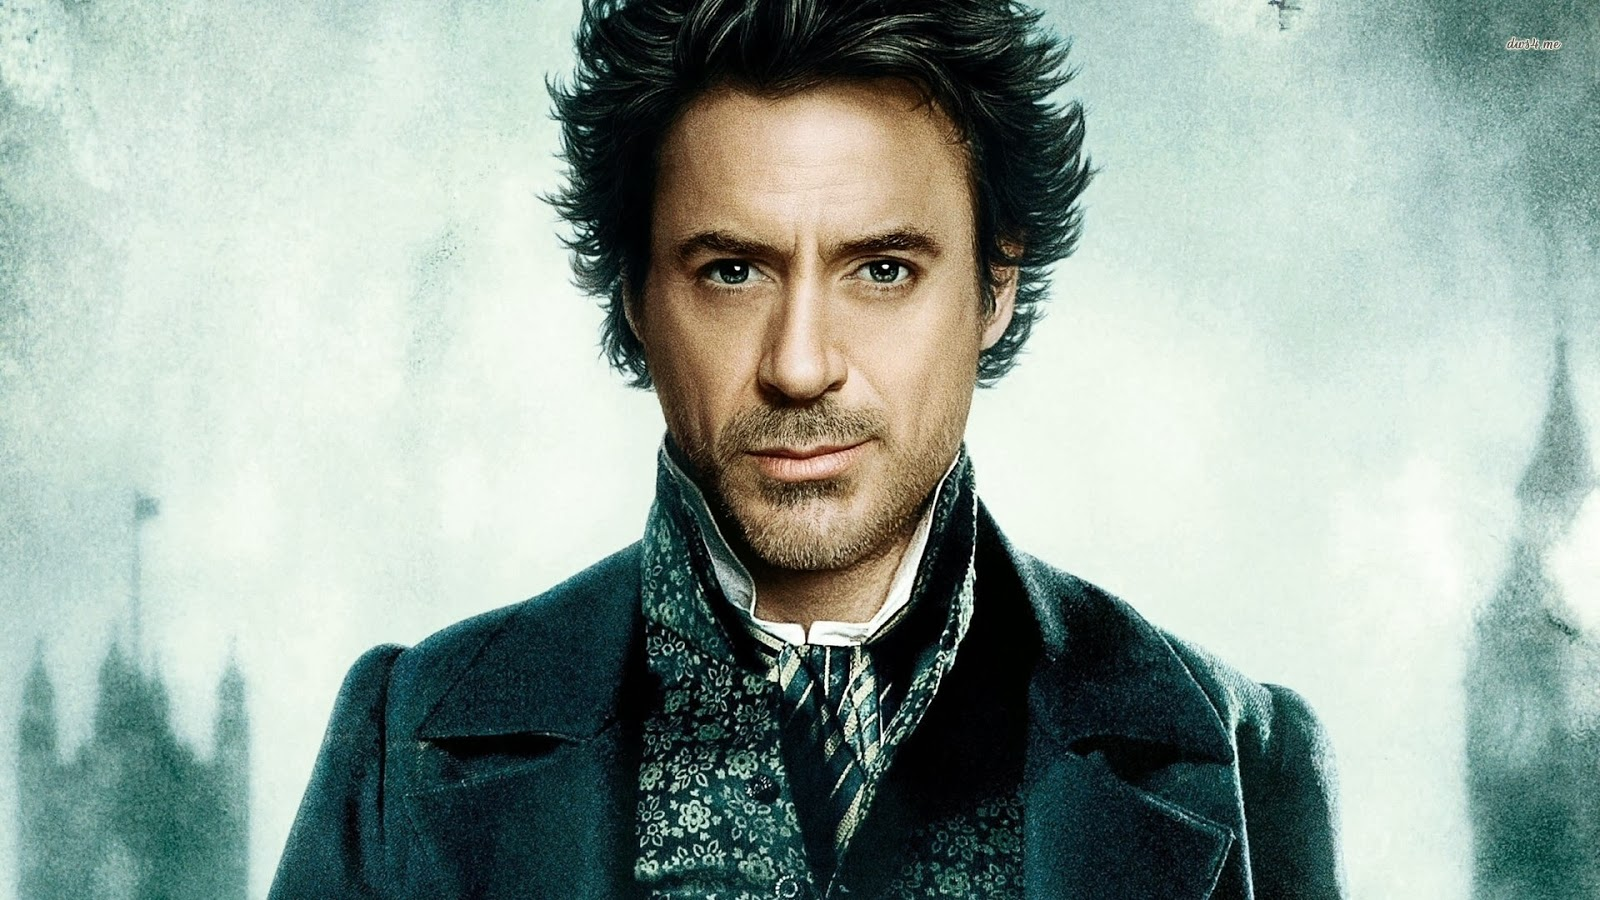 Robert Downey Jr Sherlock Holmes Wallpapers Wallpaper  - robert downey jr in sherlock holmes wallpapers